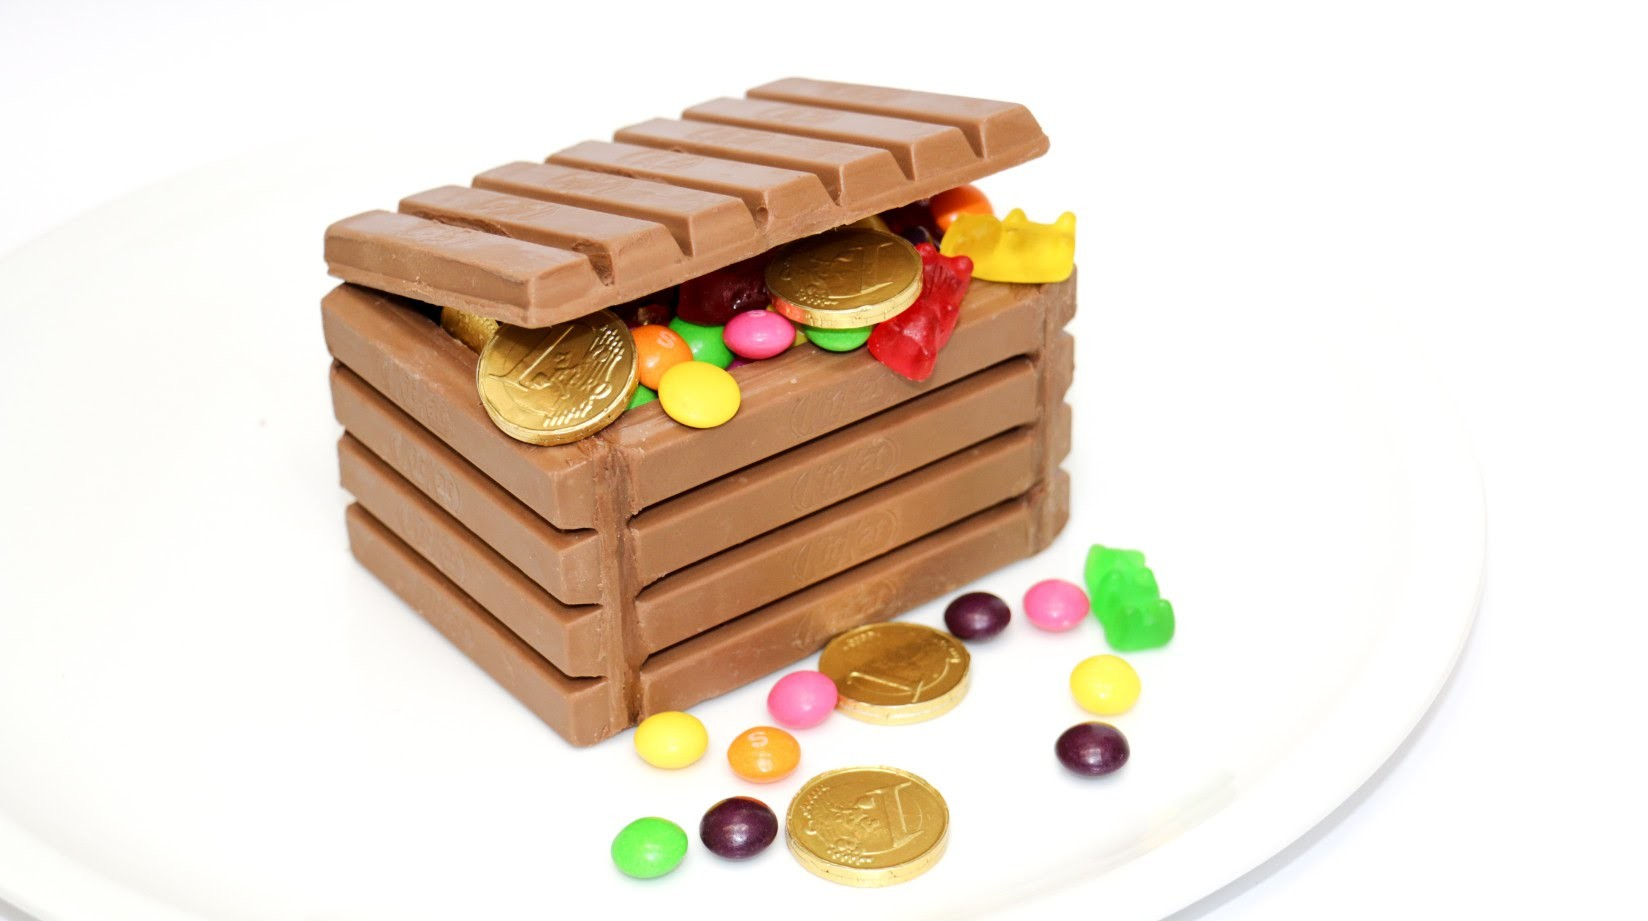 DIY - KIT KAT Chocolate Candy Chest